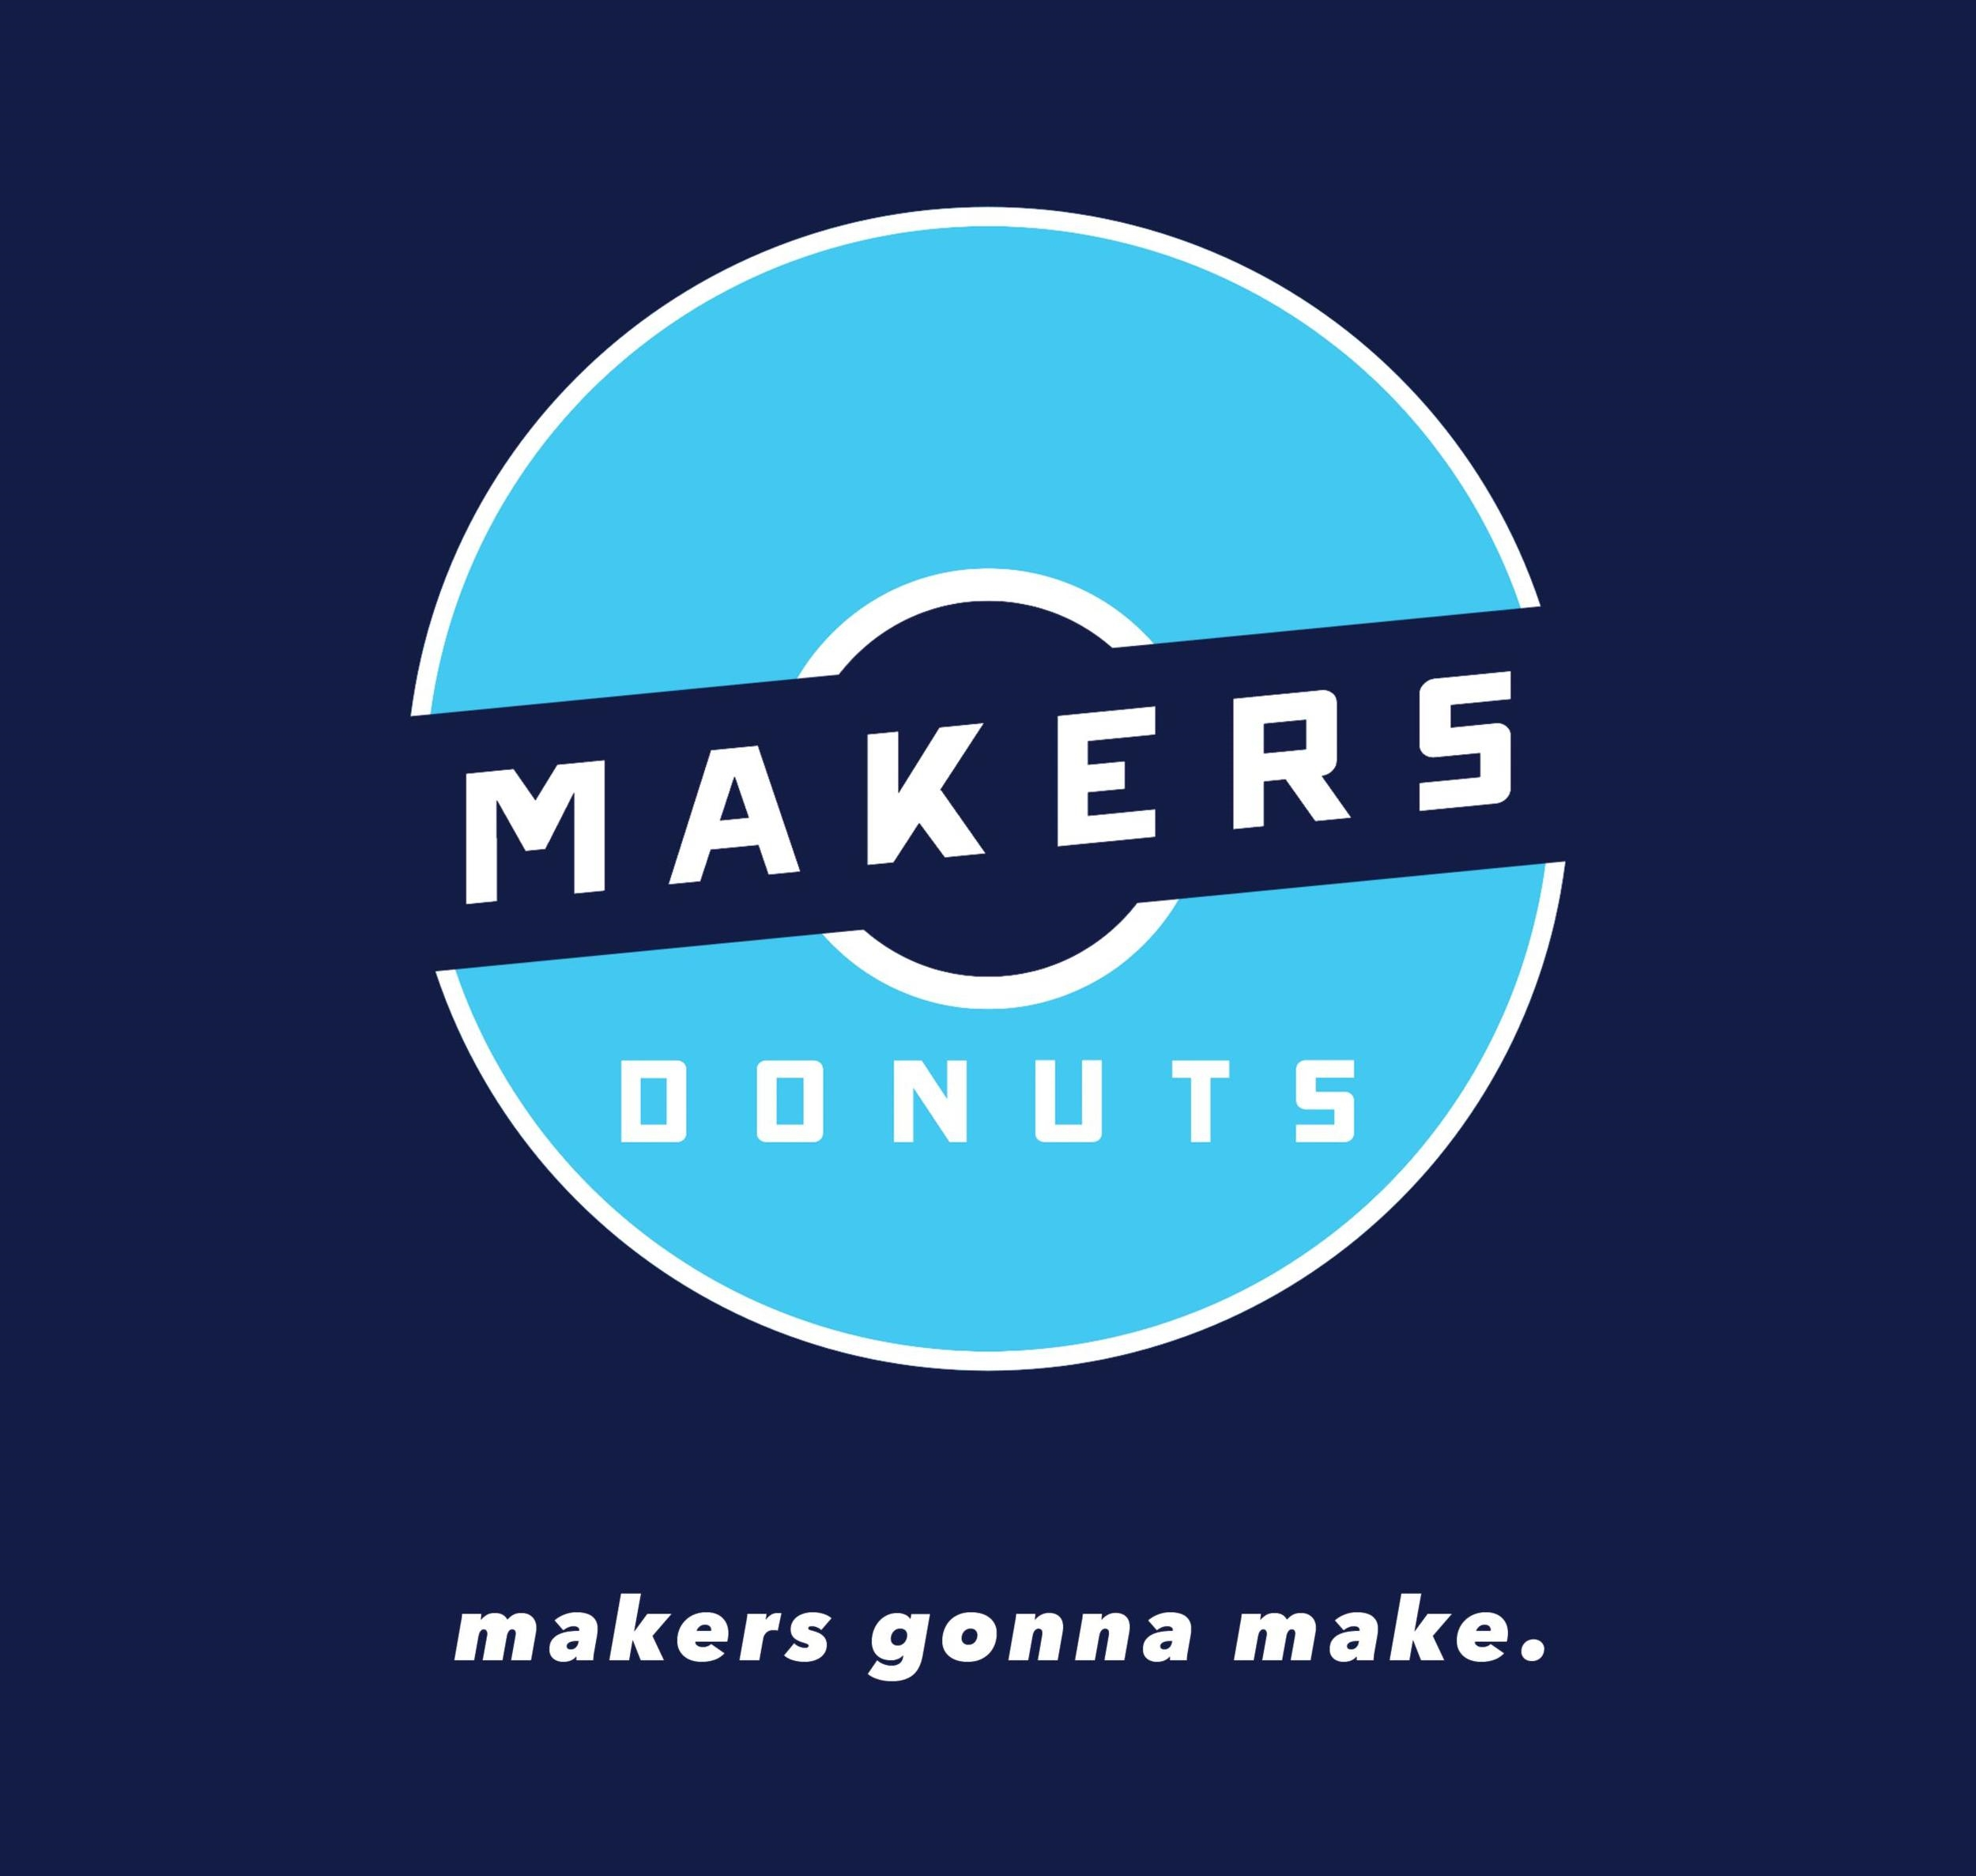 makers_donuts_ad_sine.jpg